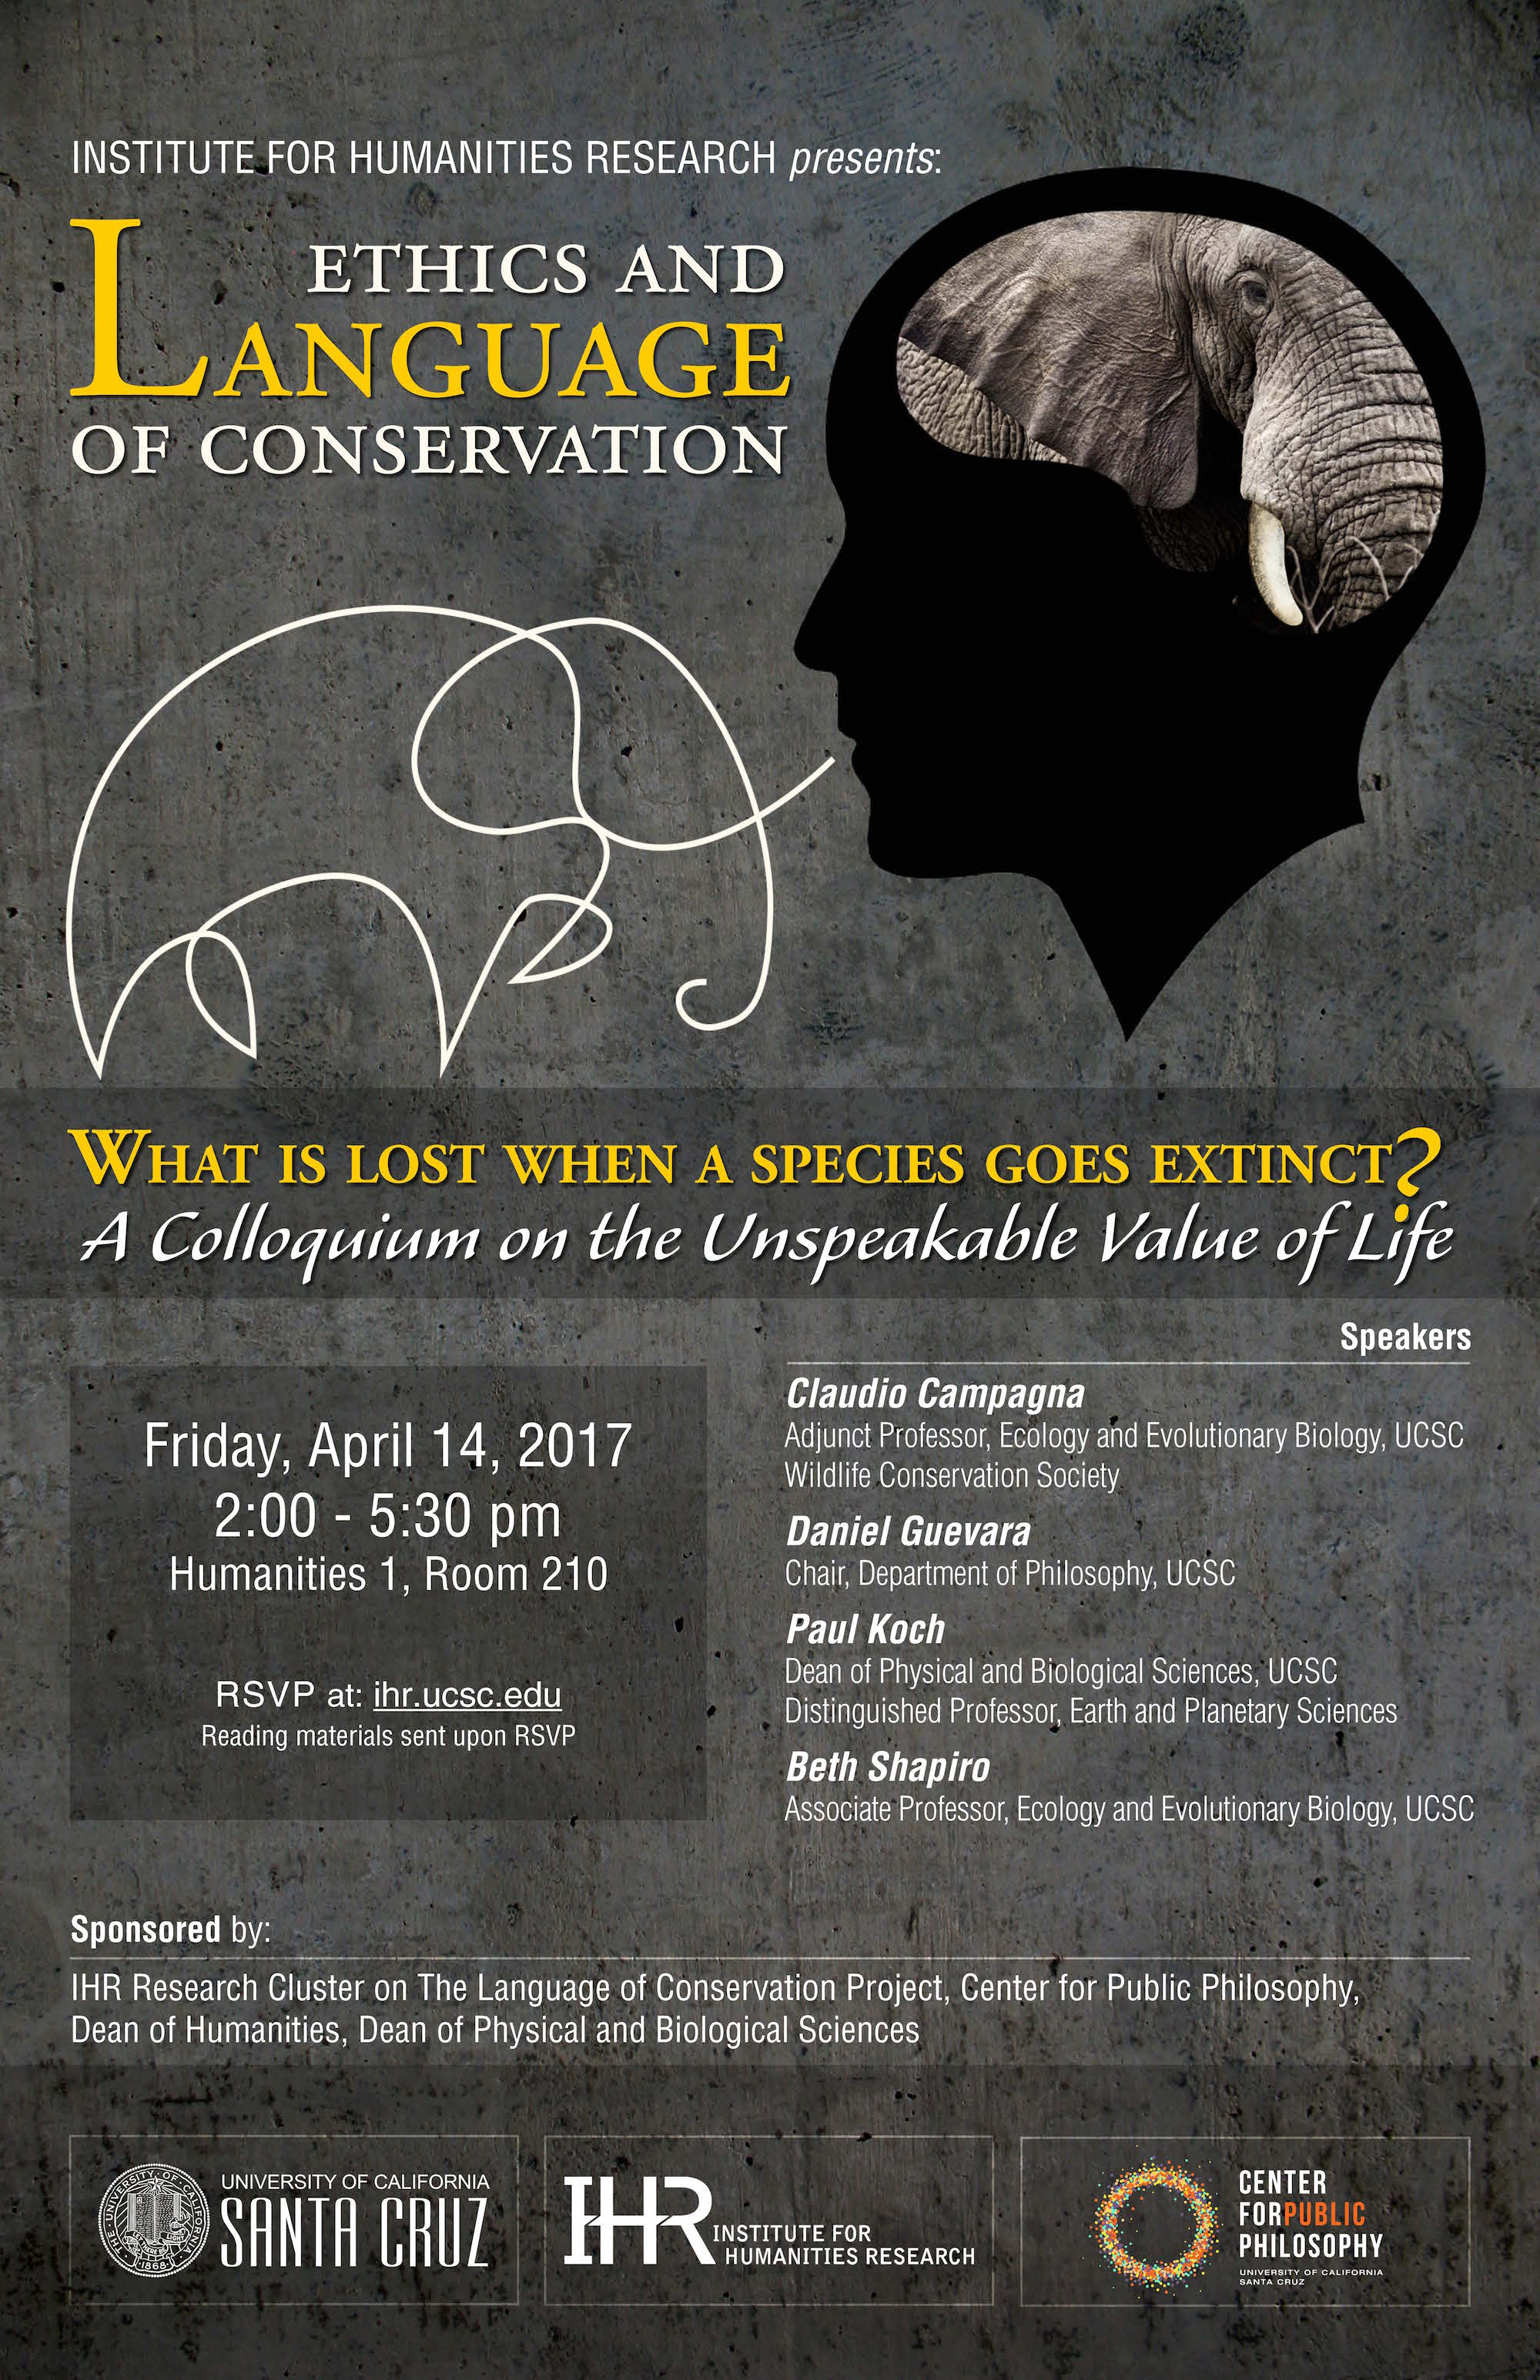 Ethics and Language of Conservation Colloquium poster 4.14.17